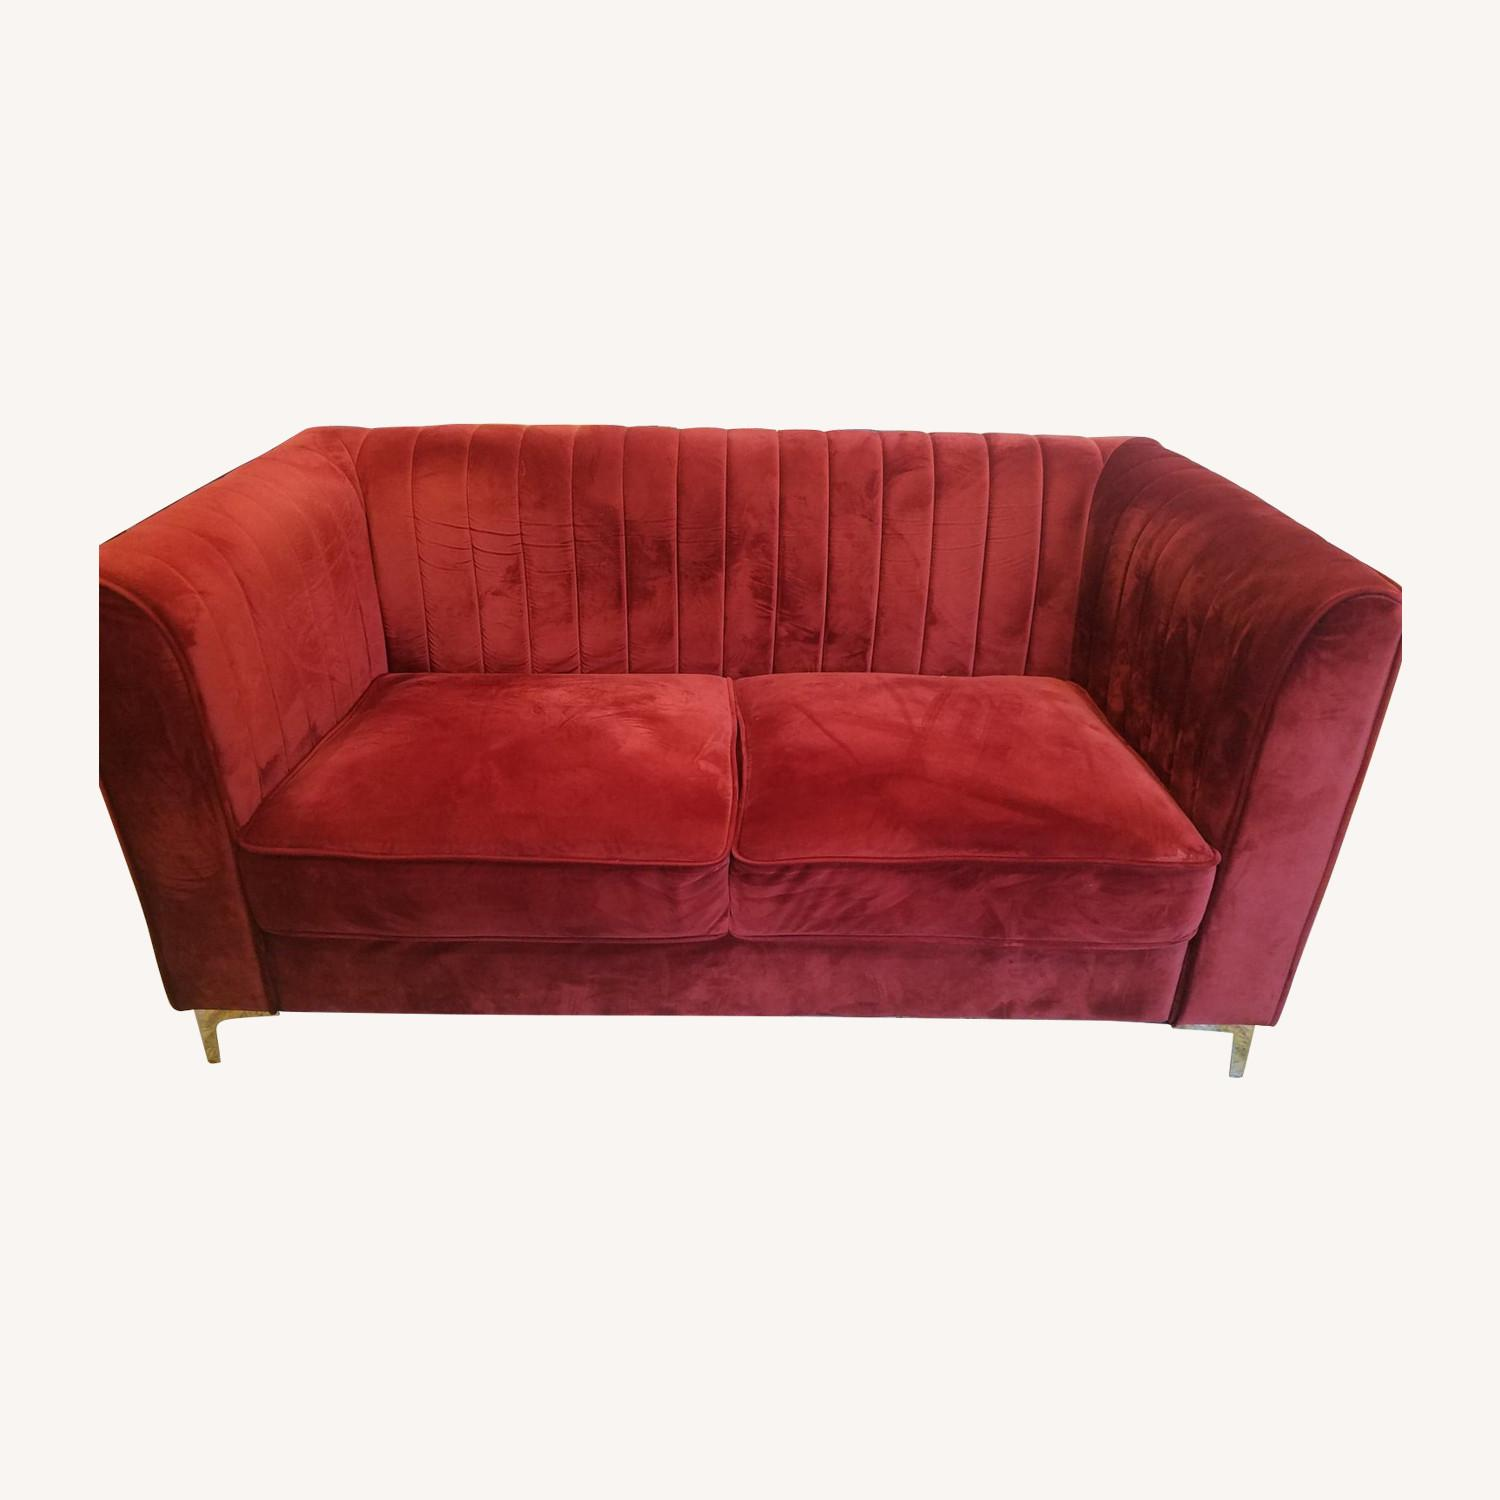 Two-seat red sofa/loveseat - image-0